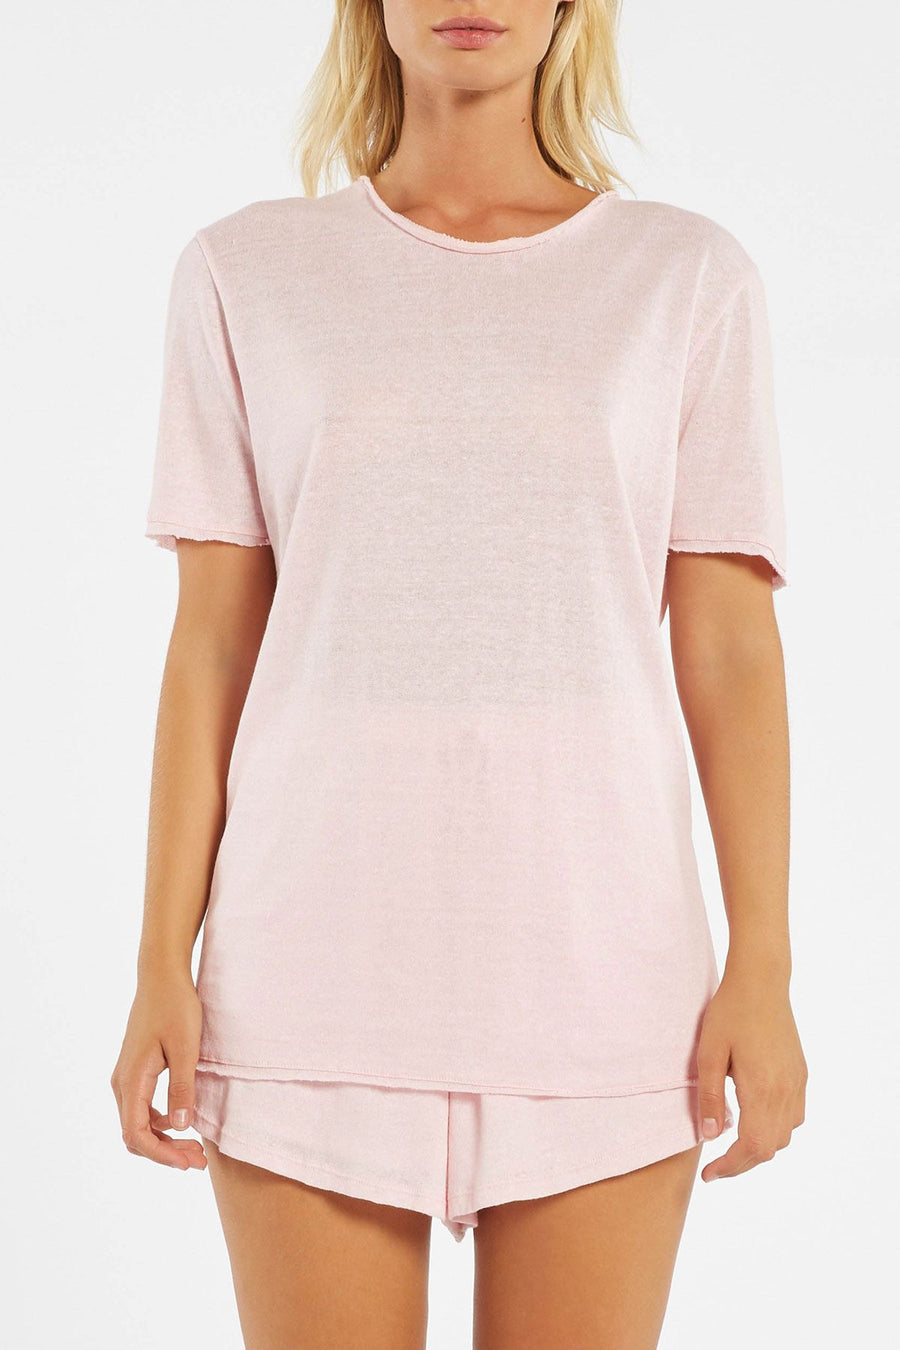 Zulu and Zephyr Cove Tee Powder Pink